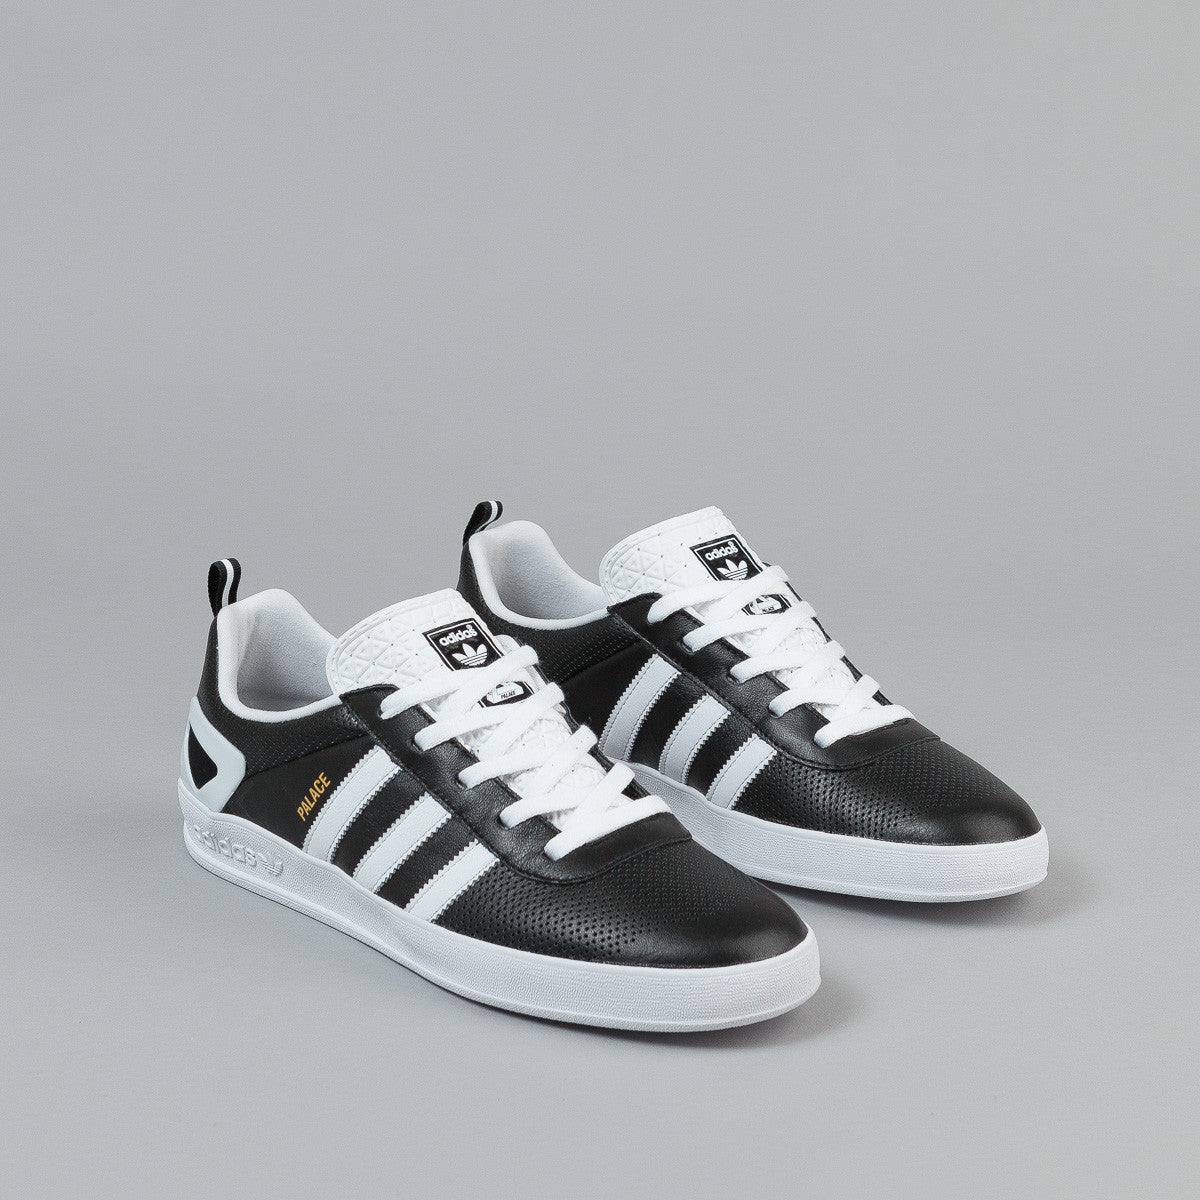 Adidas X Palace Shoes For Sale